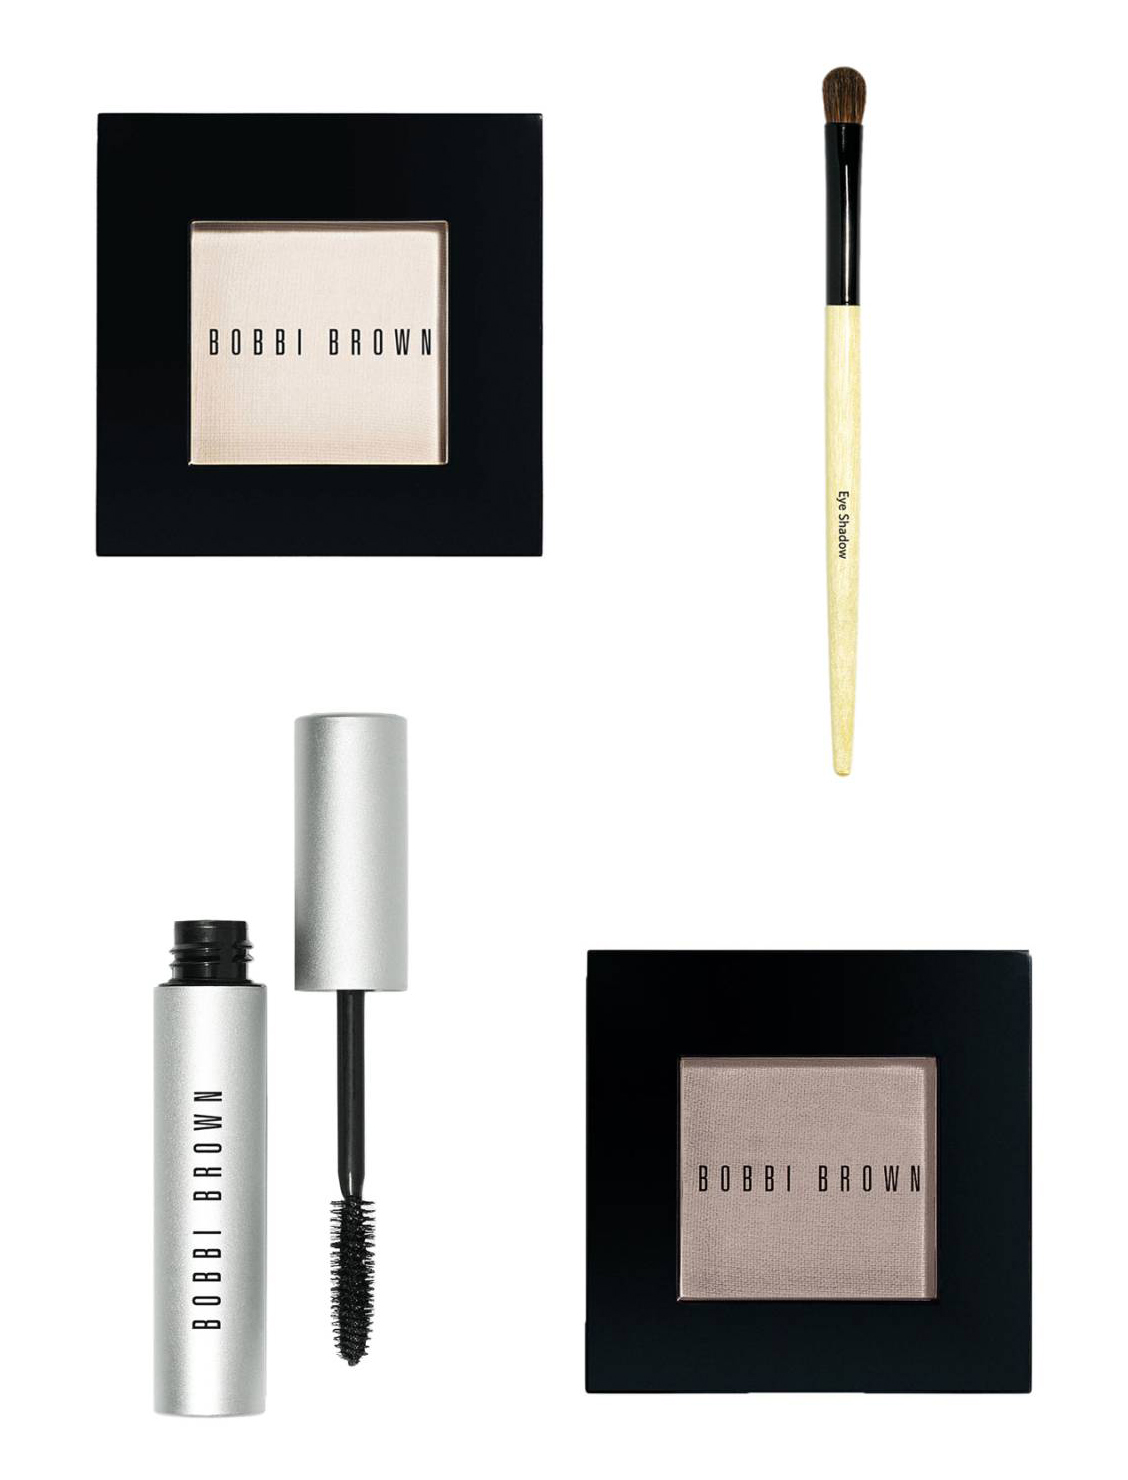 My Little Bungalow Favorite Eye Makeup Products